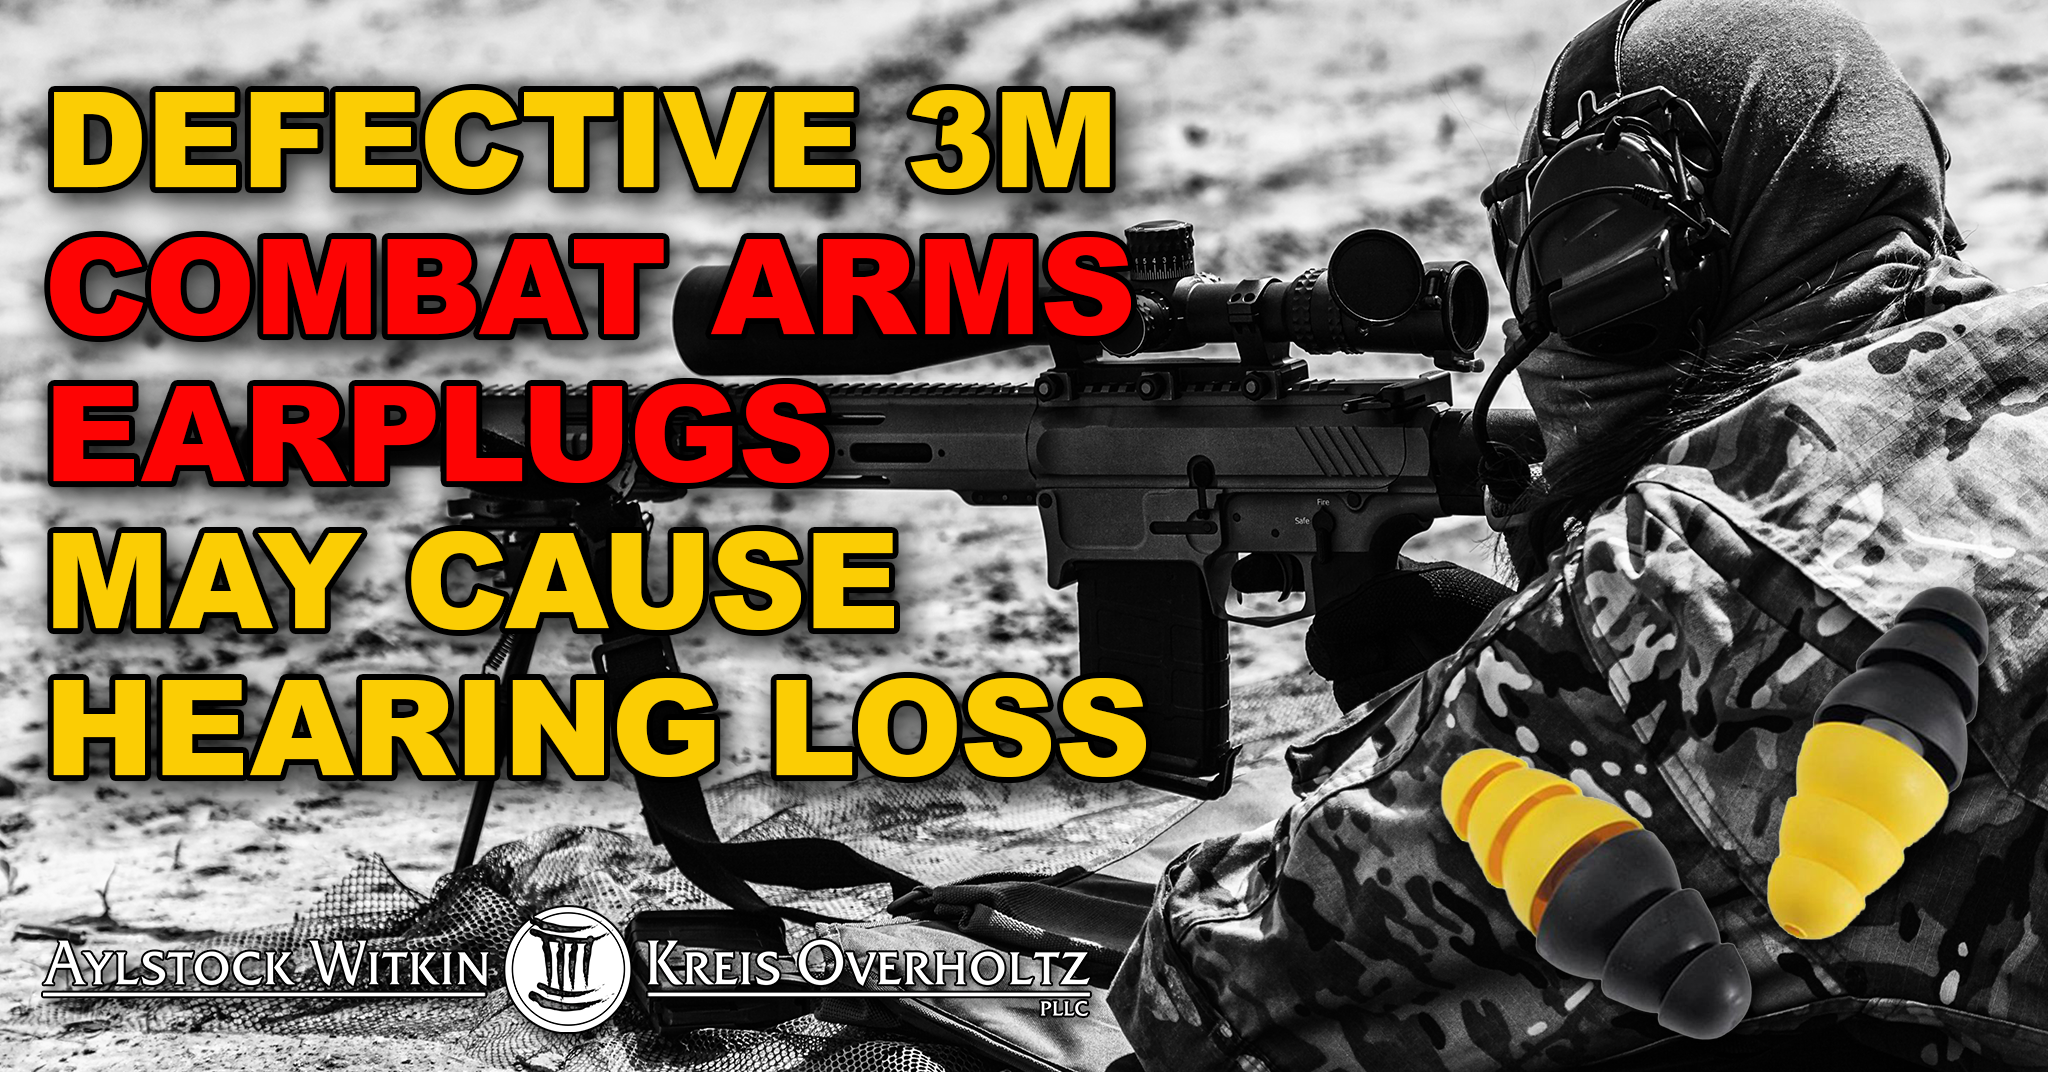 Defective 3M Combat Arms Earplugs May Cause Hearing Loss Or Tinnitus